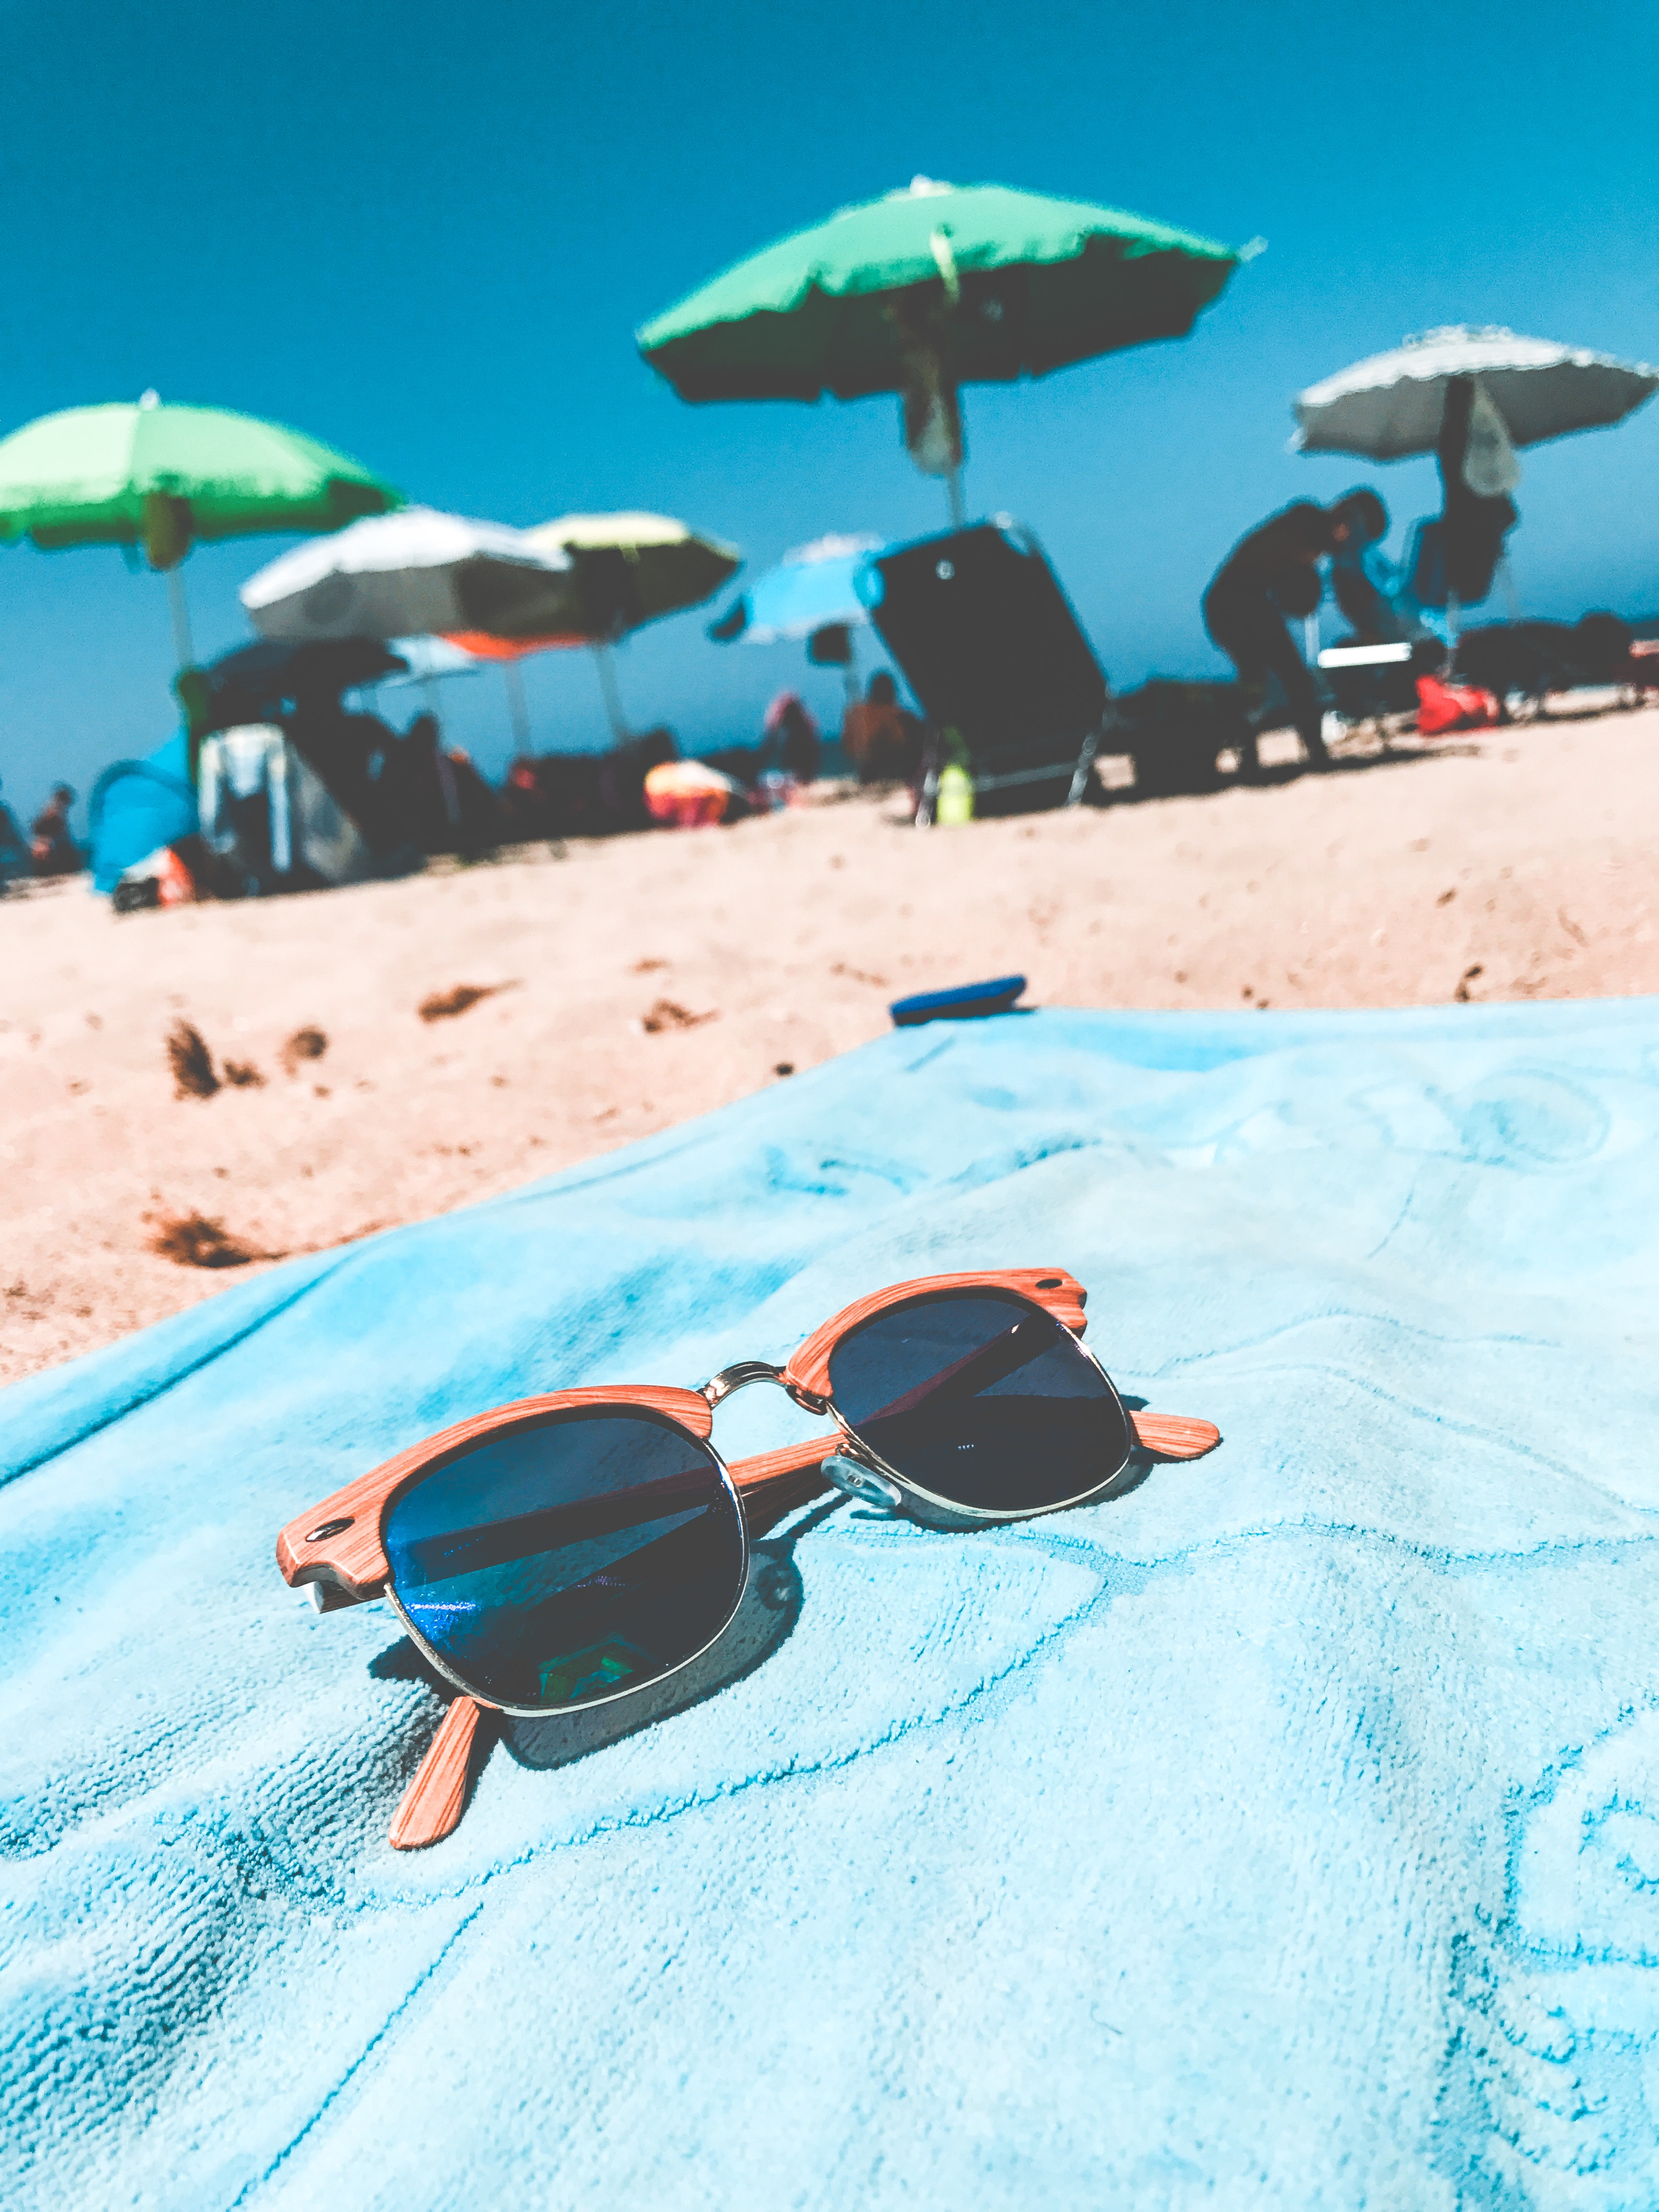 Brown Clubmaster Sunglasses on Blue Towel, Sunglasses, Summer, Swimming, Towel, HQ Photo